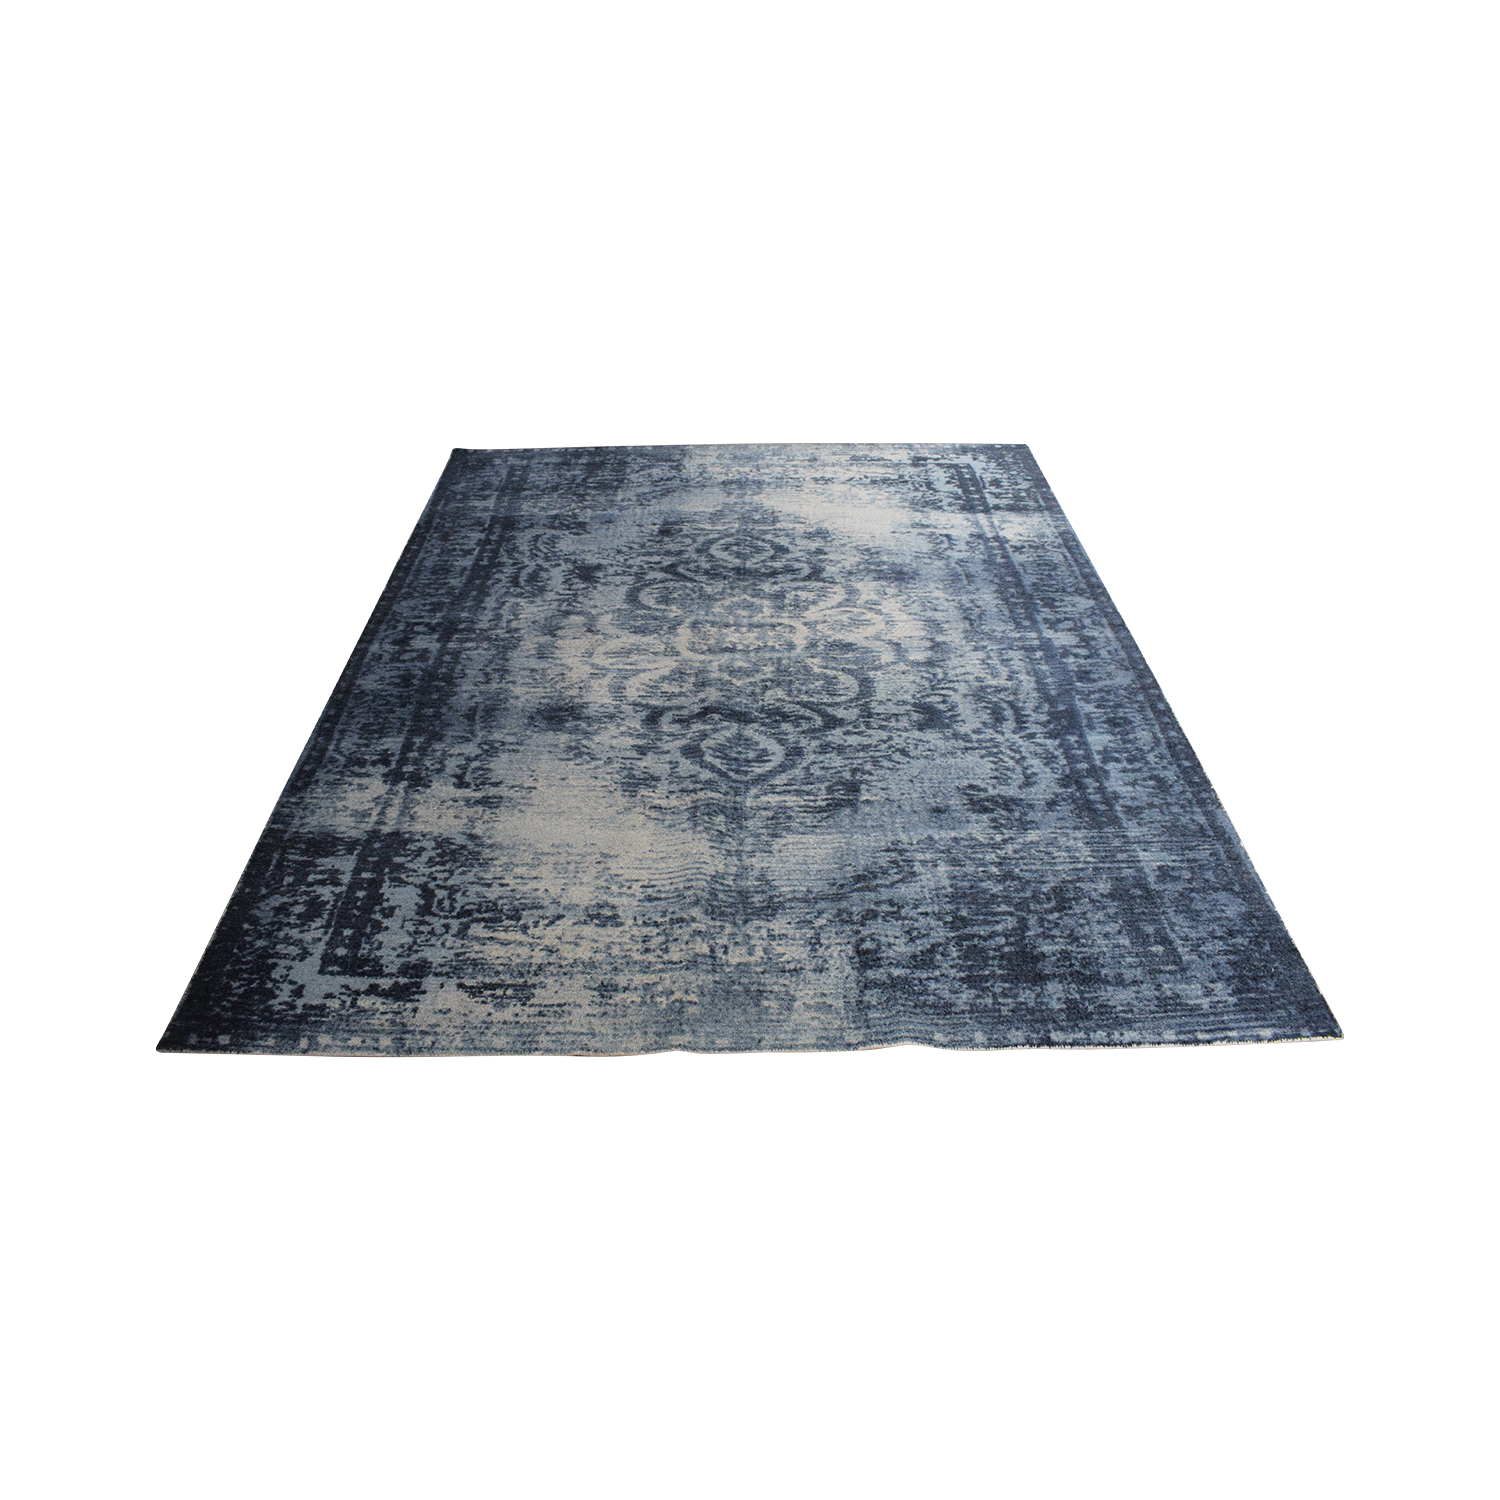 West Elm West Elm Distressed Arabesque 8x10 Wool Rug for sale